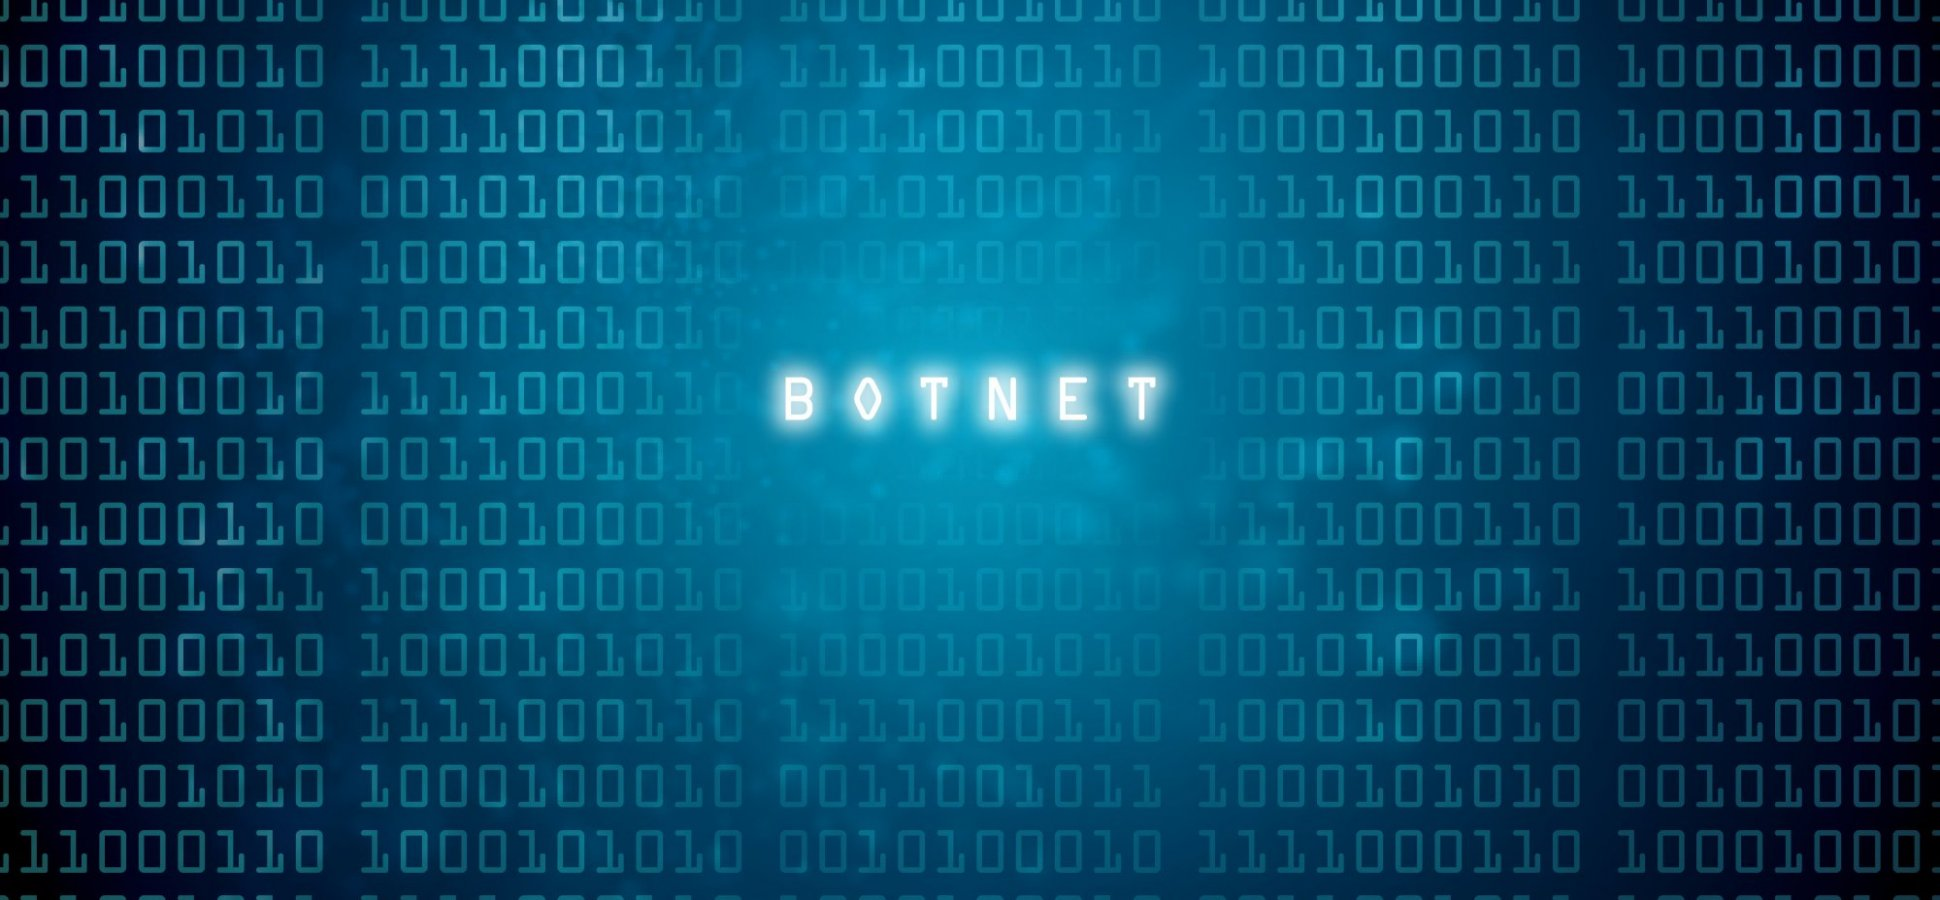 5 Things You Need to Know About Botnets   Inc com